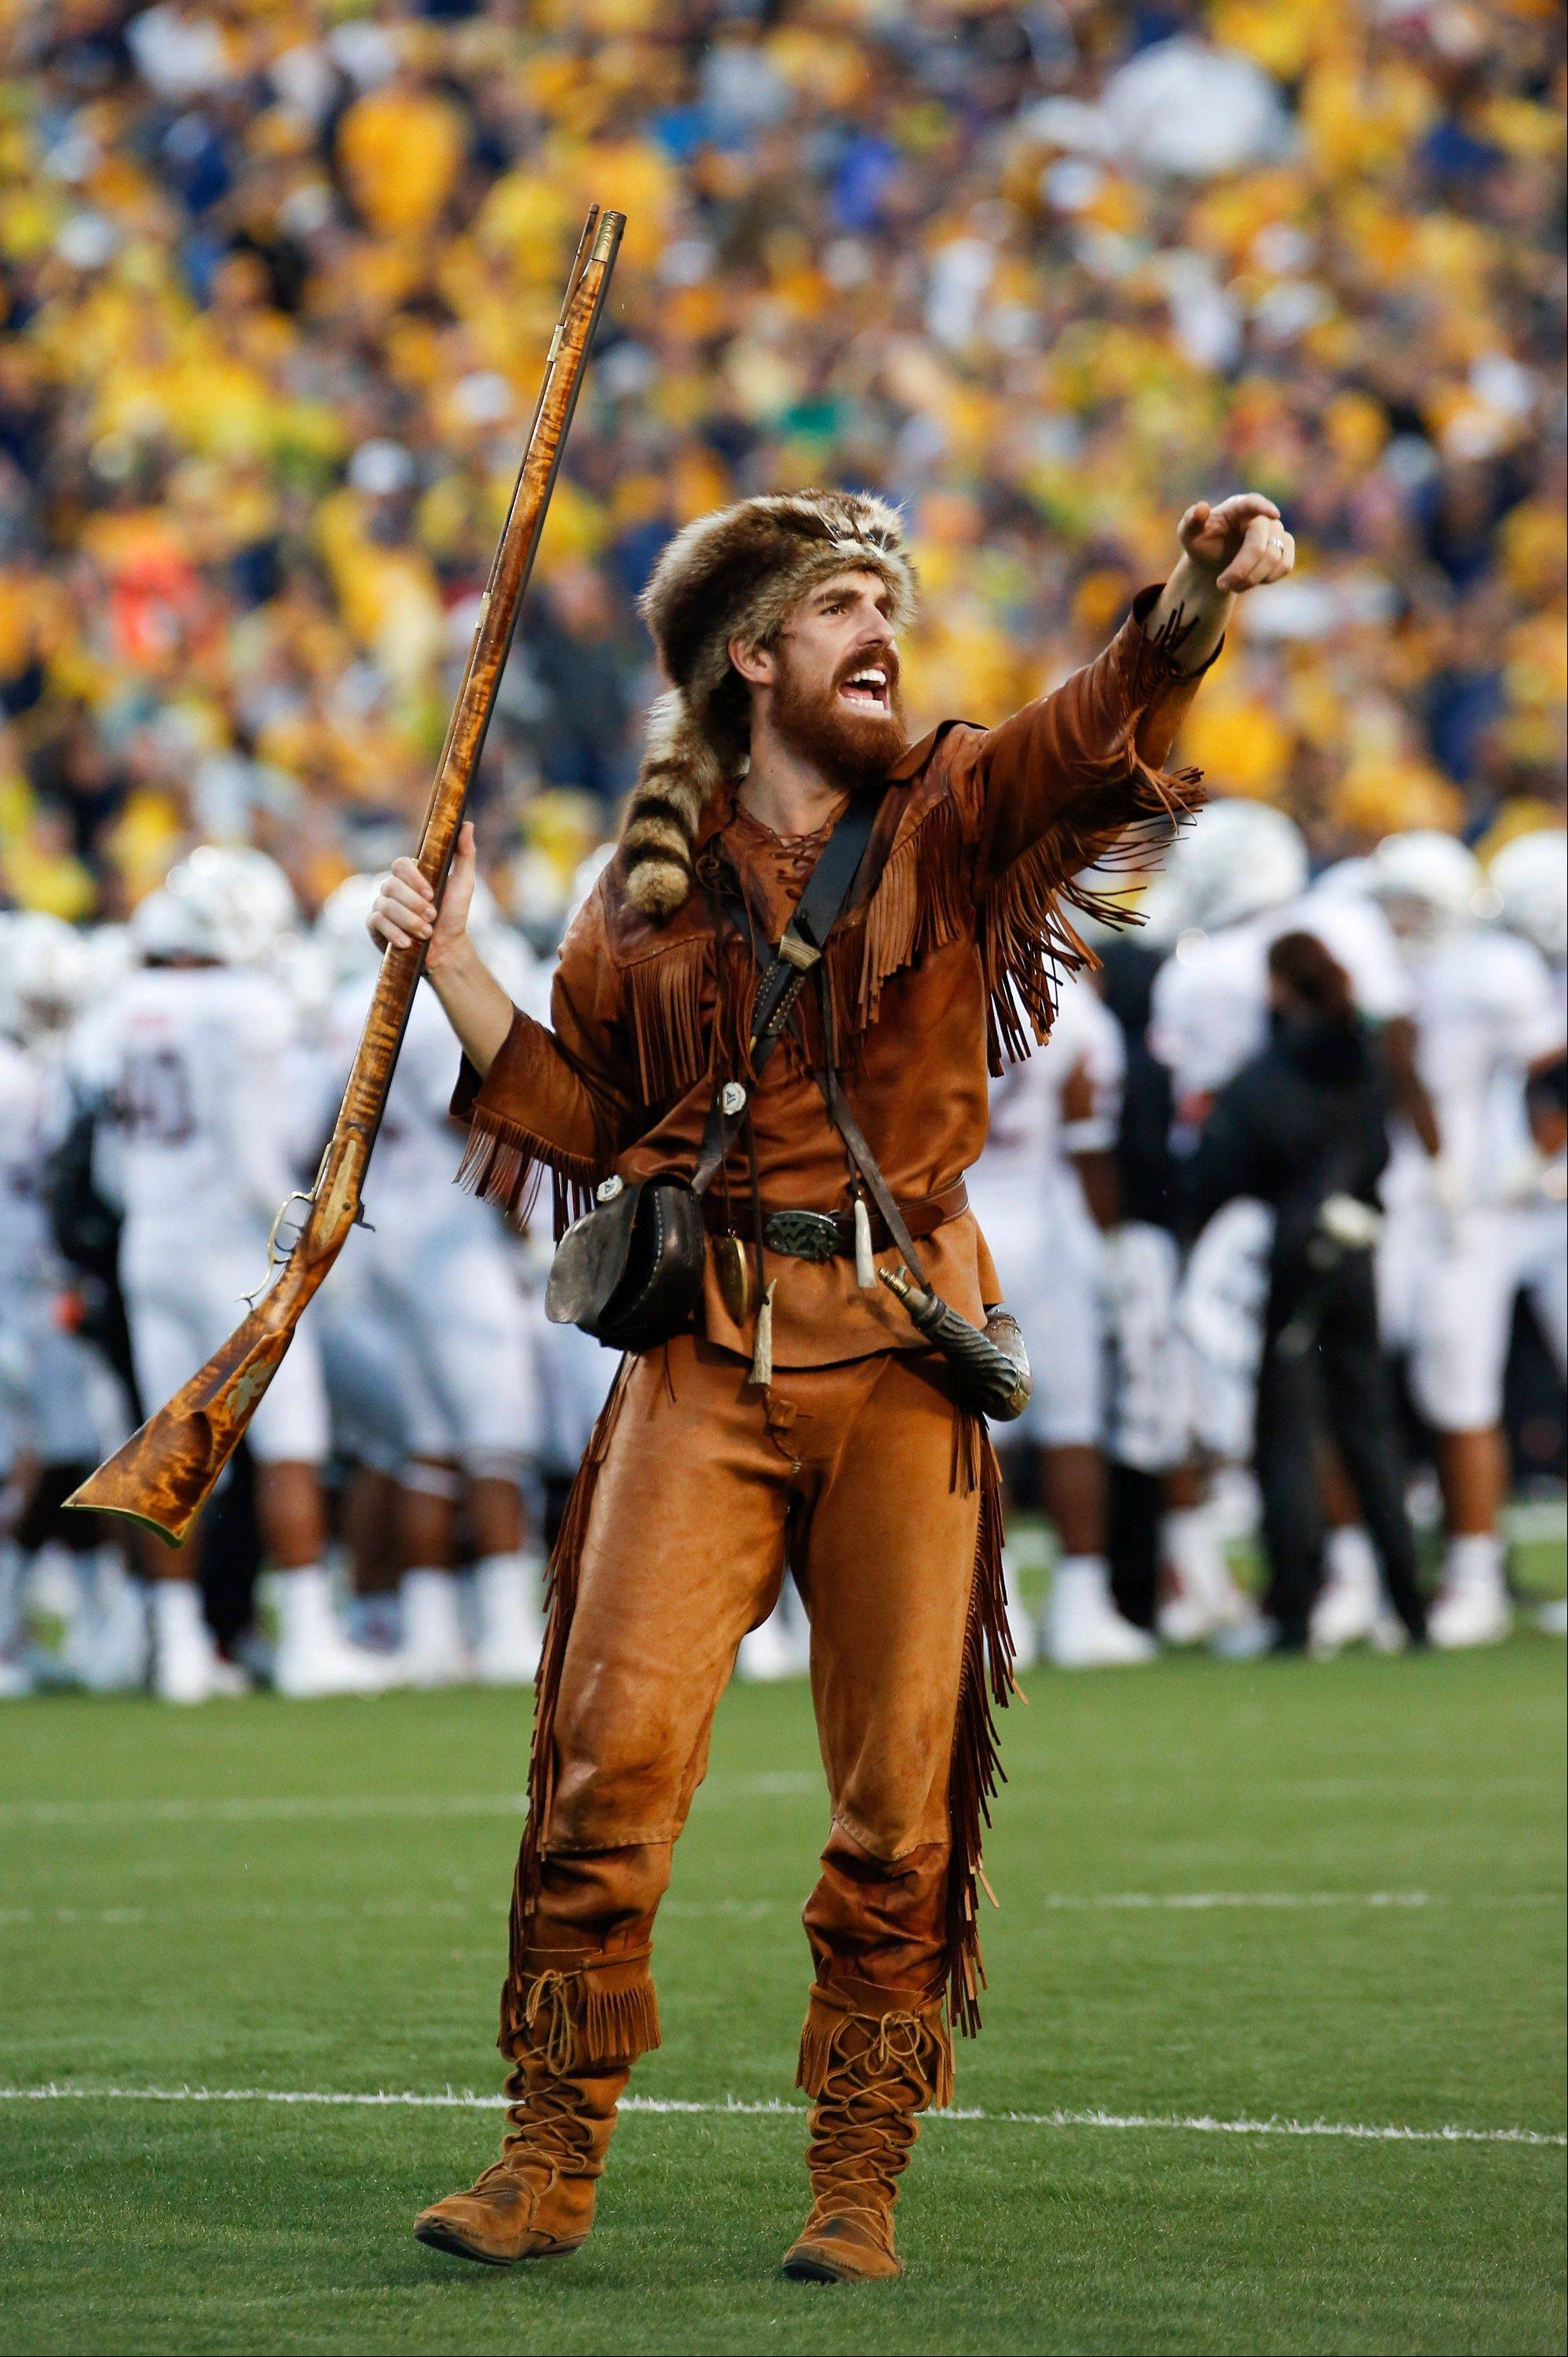 West Virginia University Mountaineer mascot Jonathan Kimble is seen during the NCAA college football game between West Virginia University and University of Maryland in Morgantown, W.Va. A video showing Kimble using his mascot rifle to hunt bear has gone viral.